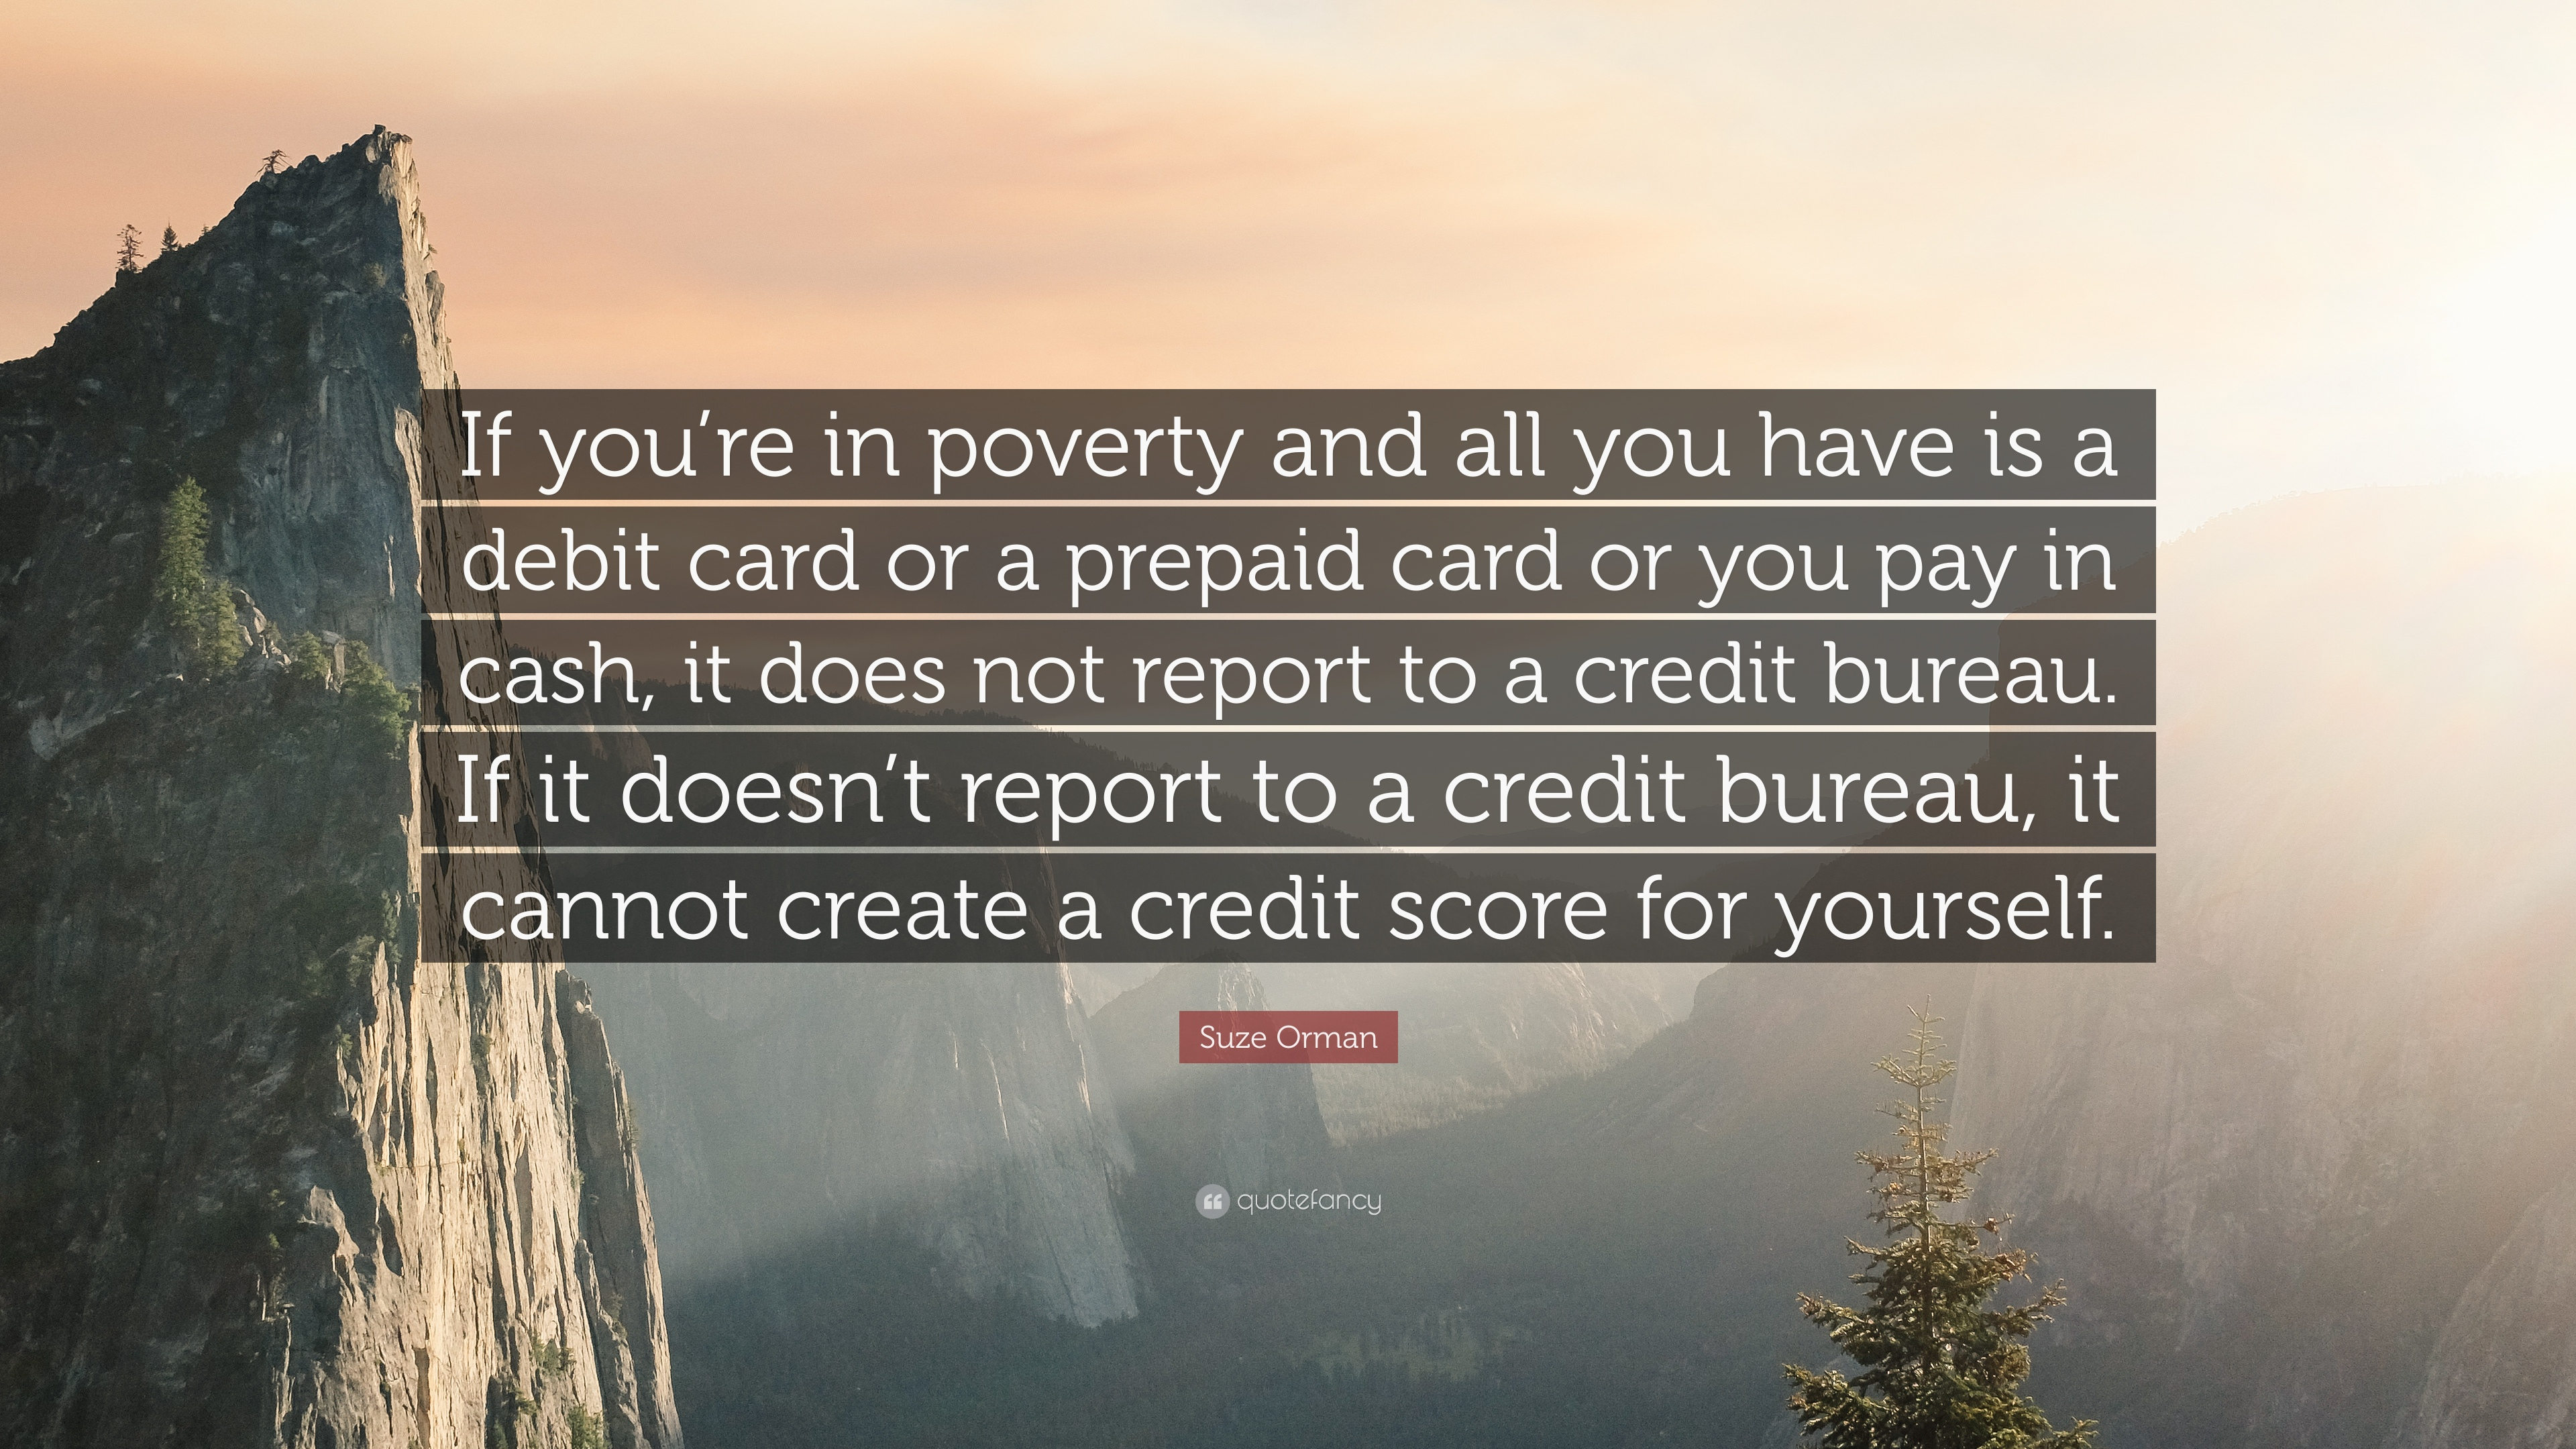 Suze orman quote if youre in poverty and all you have is a debit suze orman quote if youre in poverty and all you have is solutioingenieria Image collections